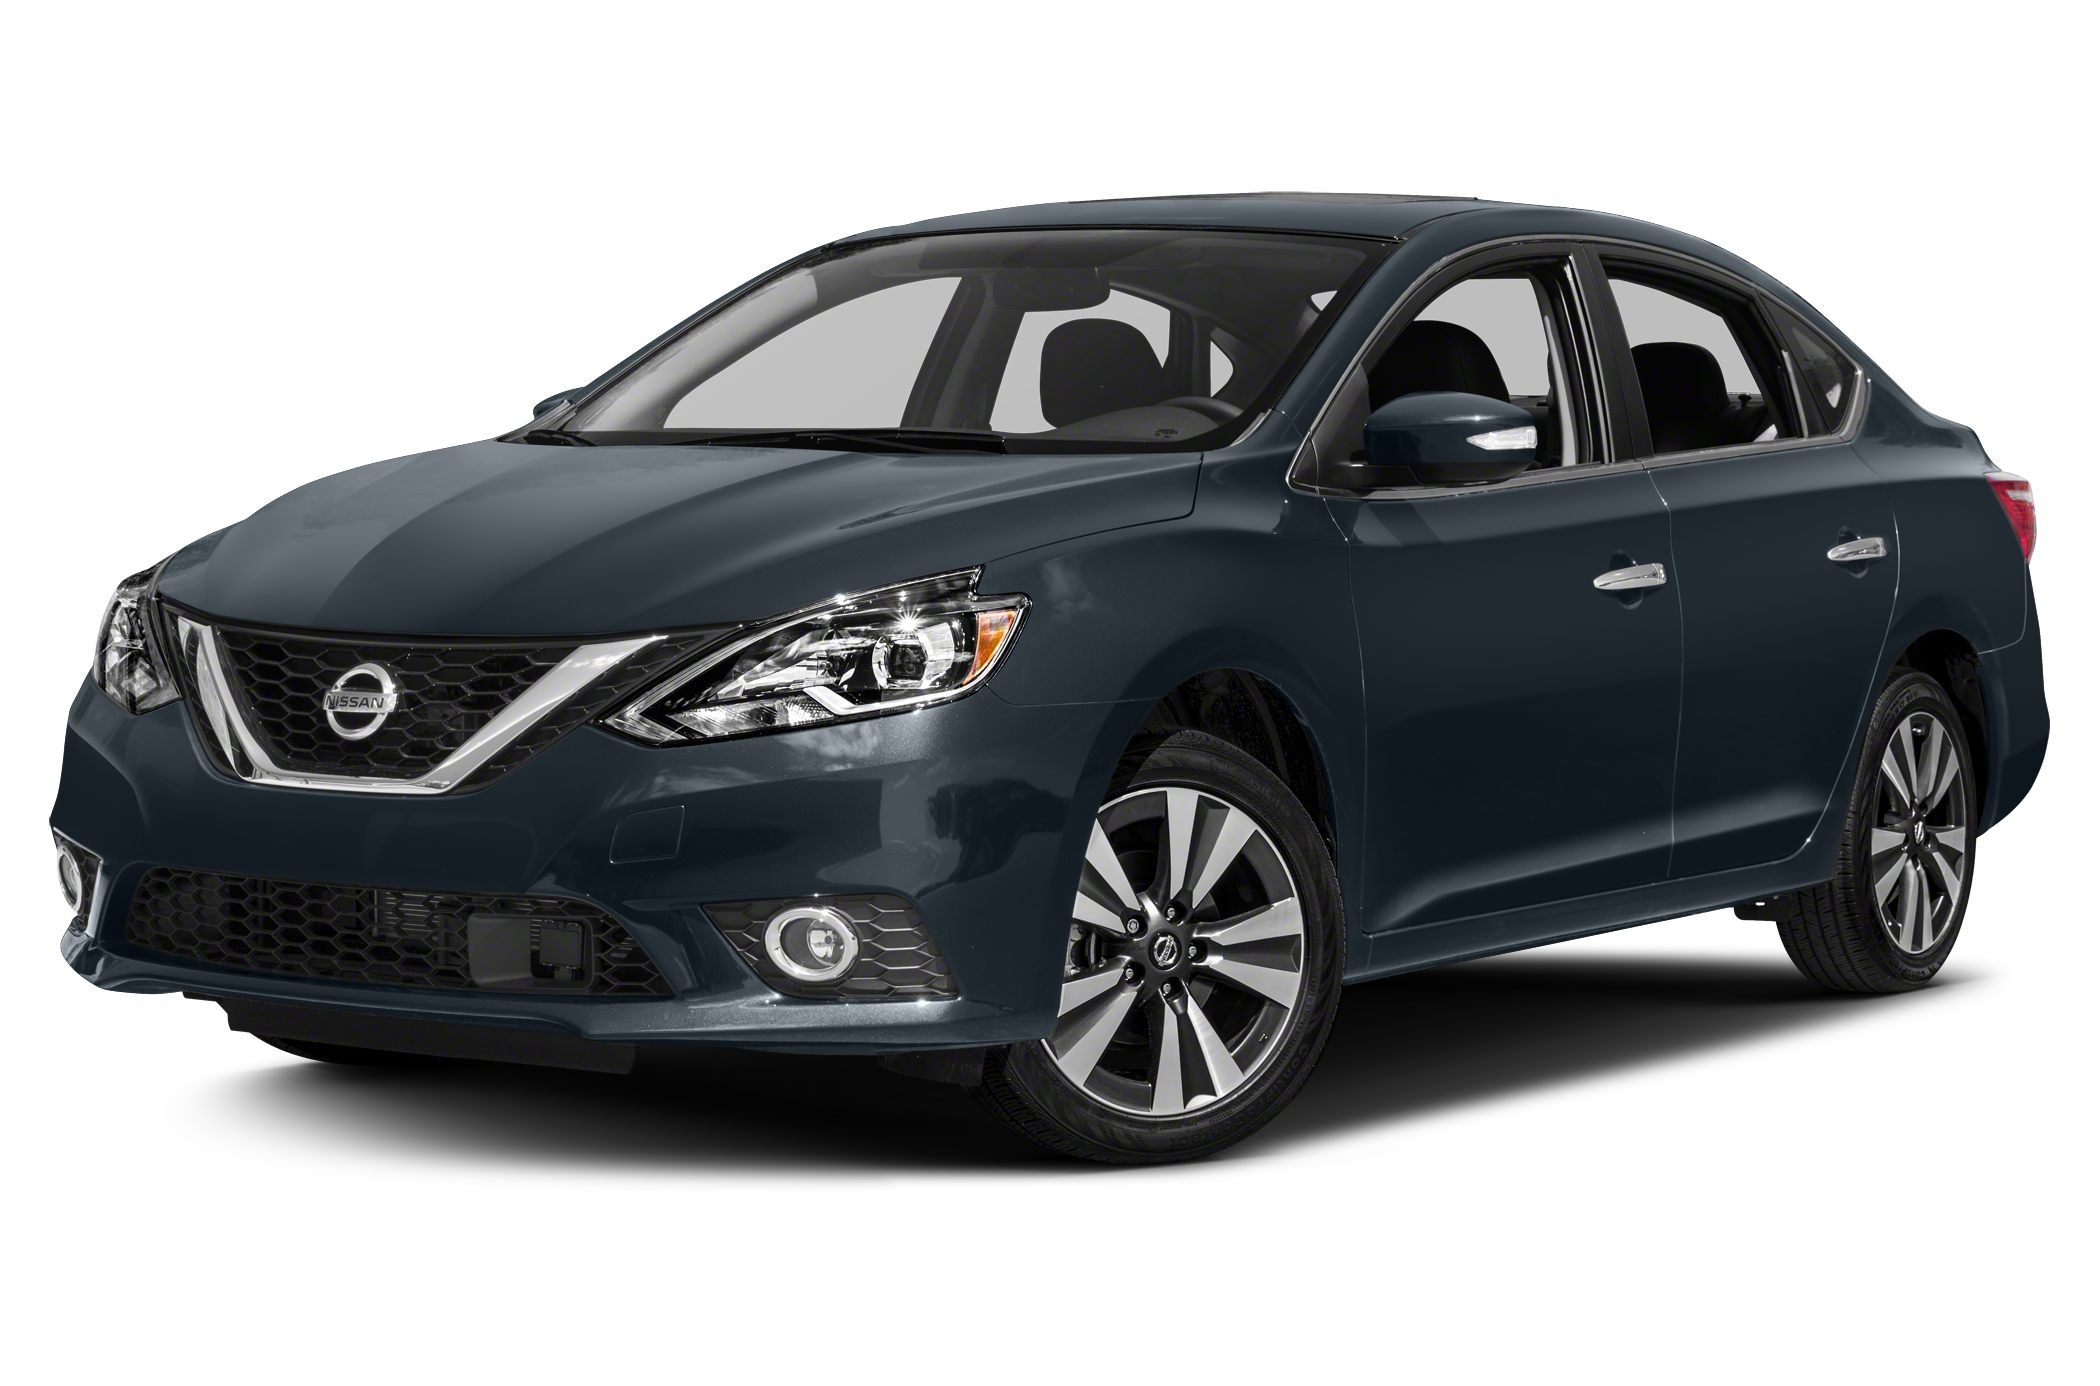 2016 Nissan Sentra SL Miles 18662Color Brown Stock PN17113 VIN 3N1AB7APXGY222311